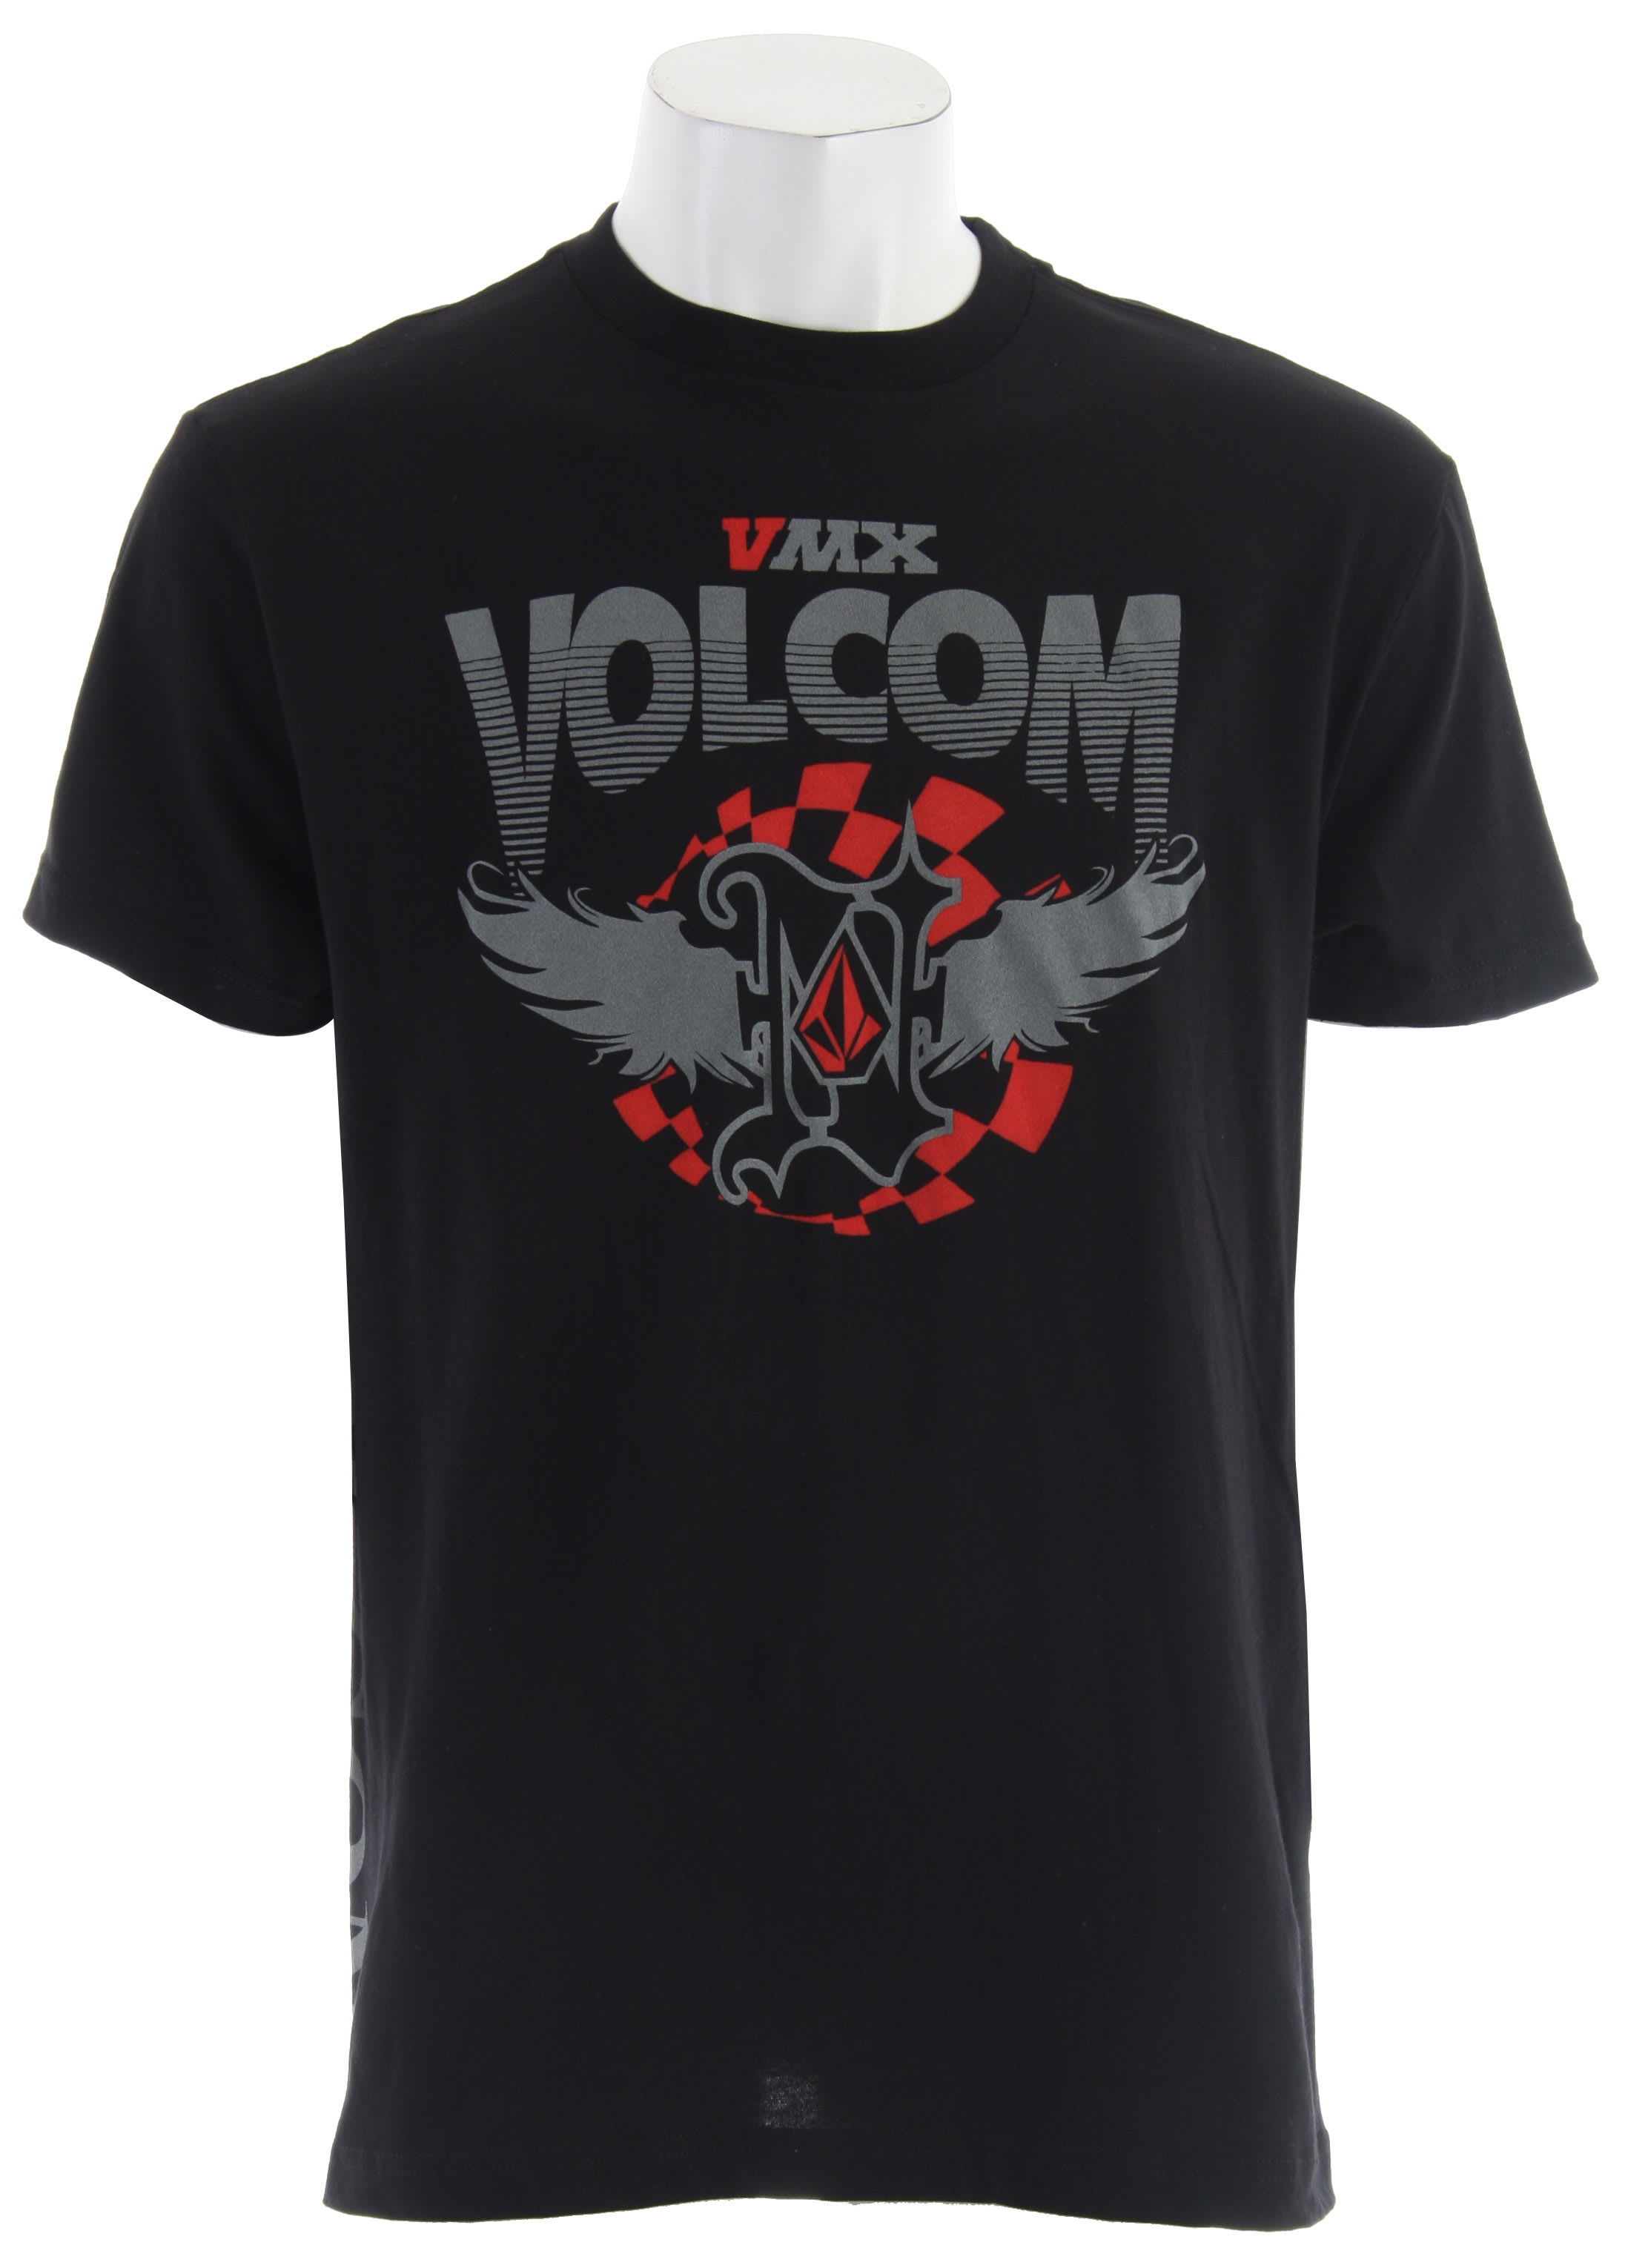 Shop for Volcom Nico T-Shirt Black - Men's